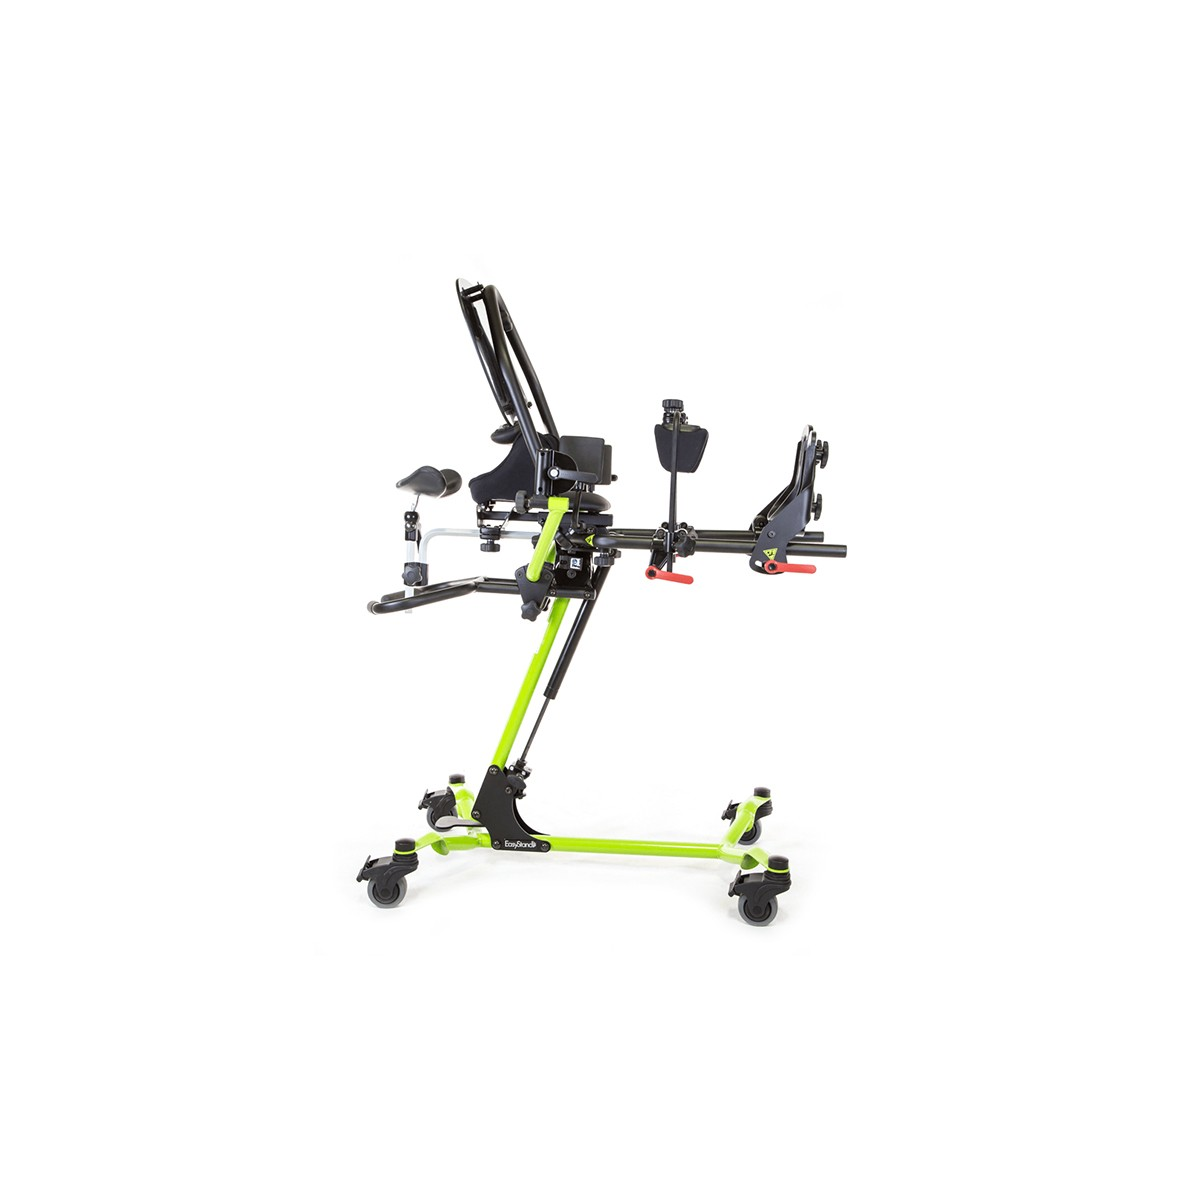 Easystand Zing Supine Size 1 Pa